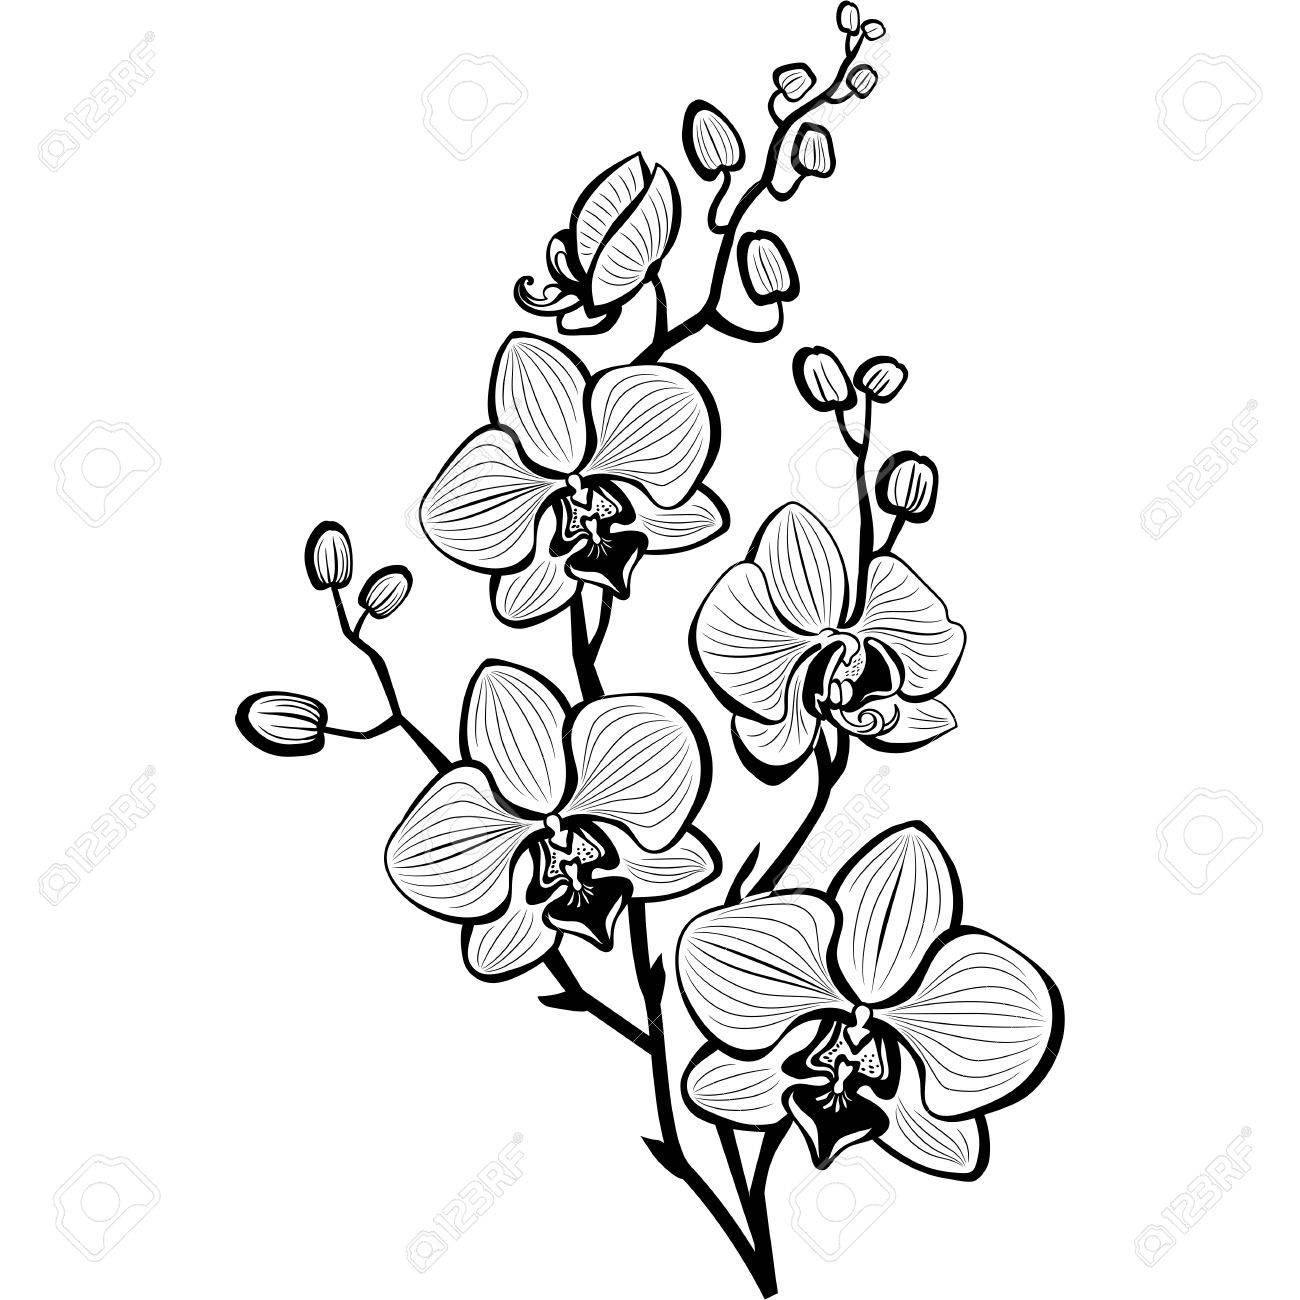 Sketch of orchid flowers - 73654336